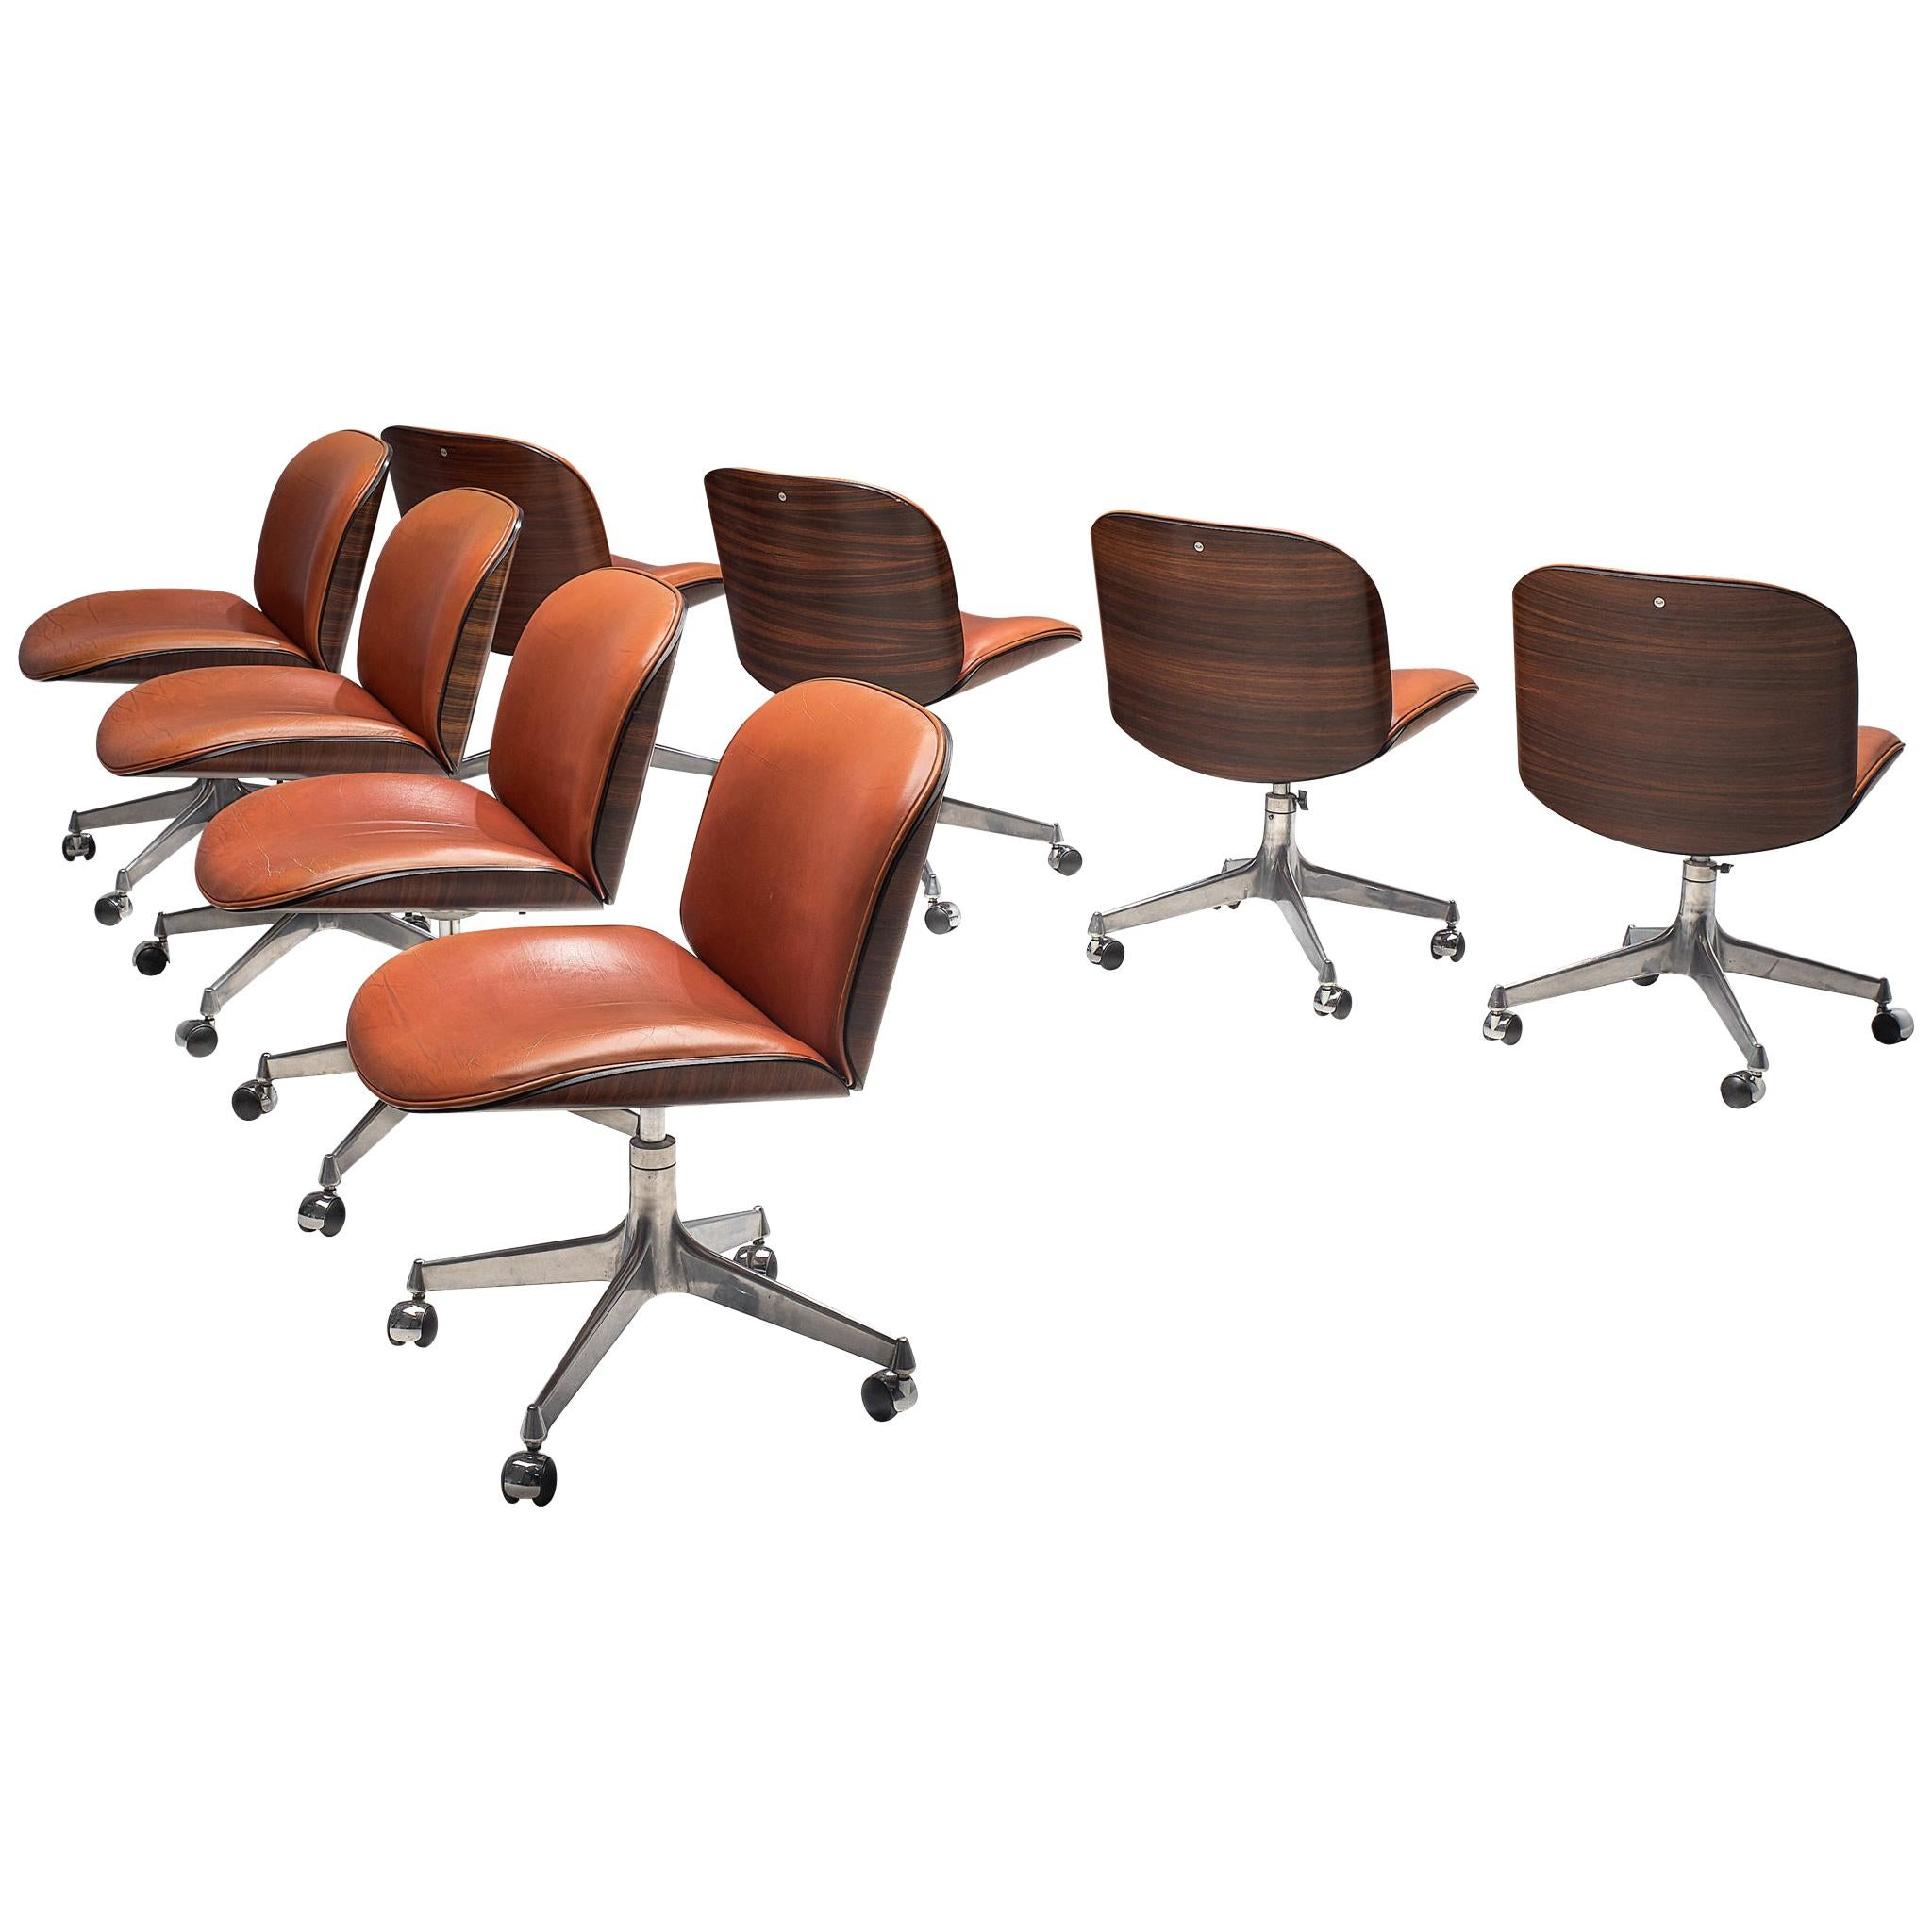 Enjoyable Set Of Eight Mim Swivel Chairs In Rosewood And Coral Leather Evergreenethics Interior Chair Design Evergreenethicsorg